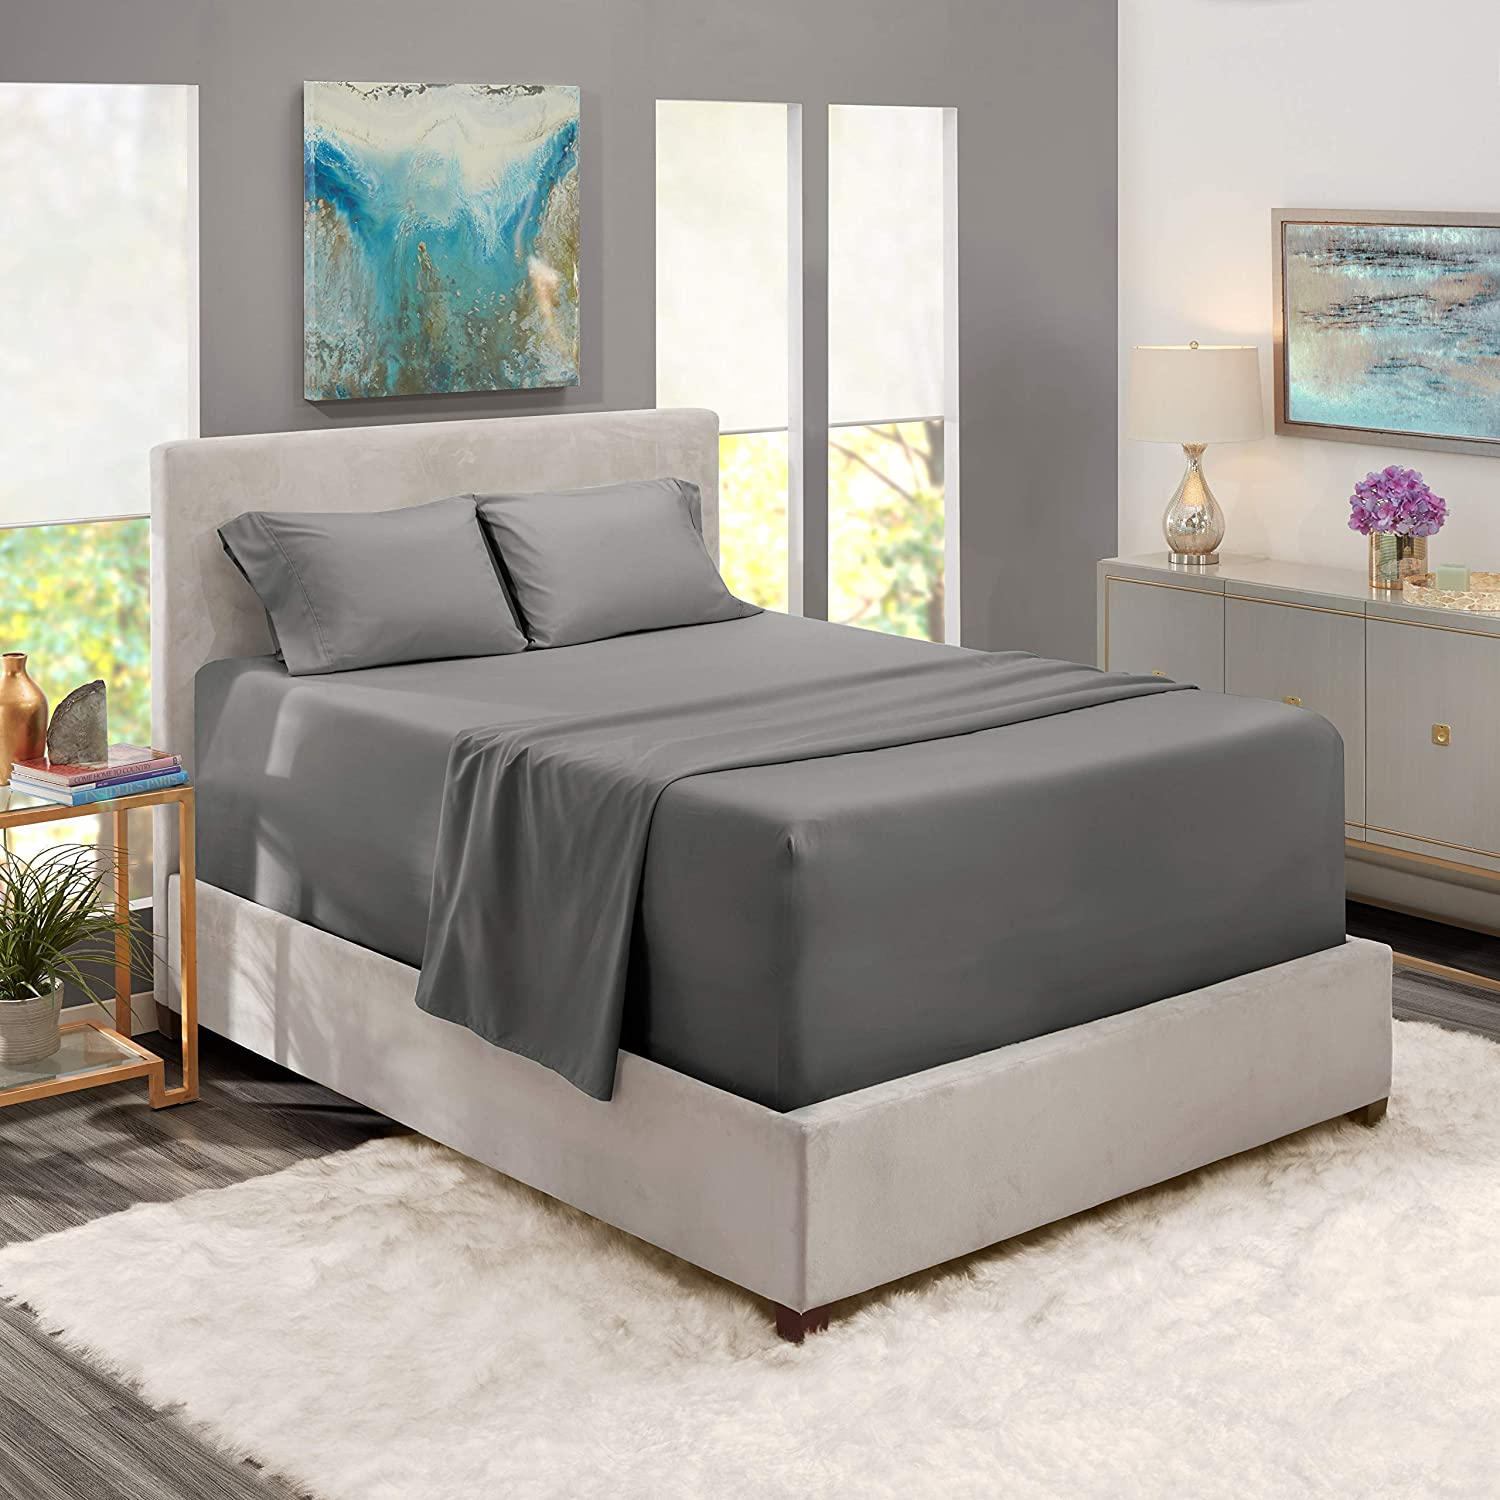 Cal King Size Sheet Set - 4 Piece - Hotel Luxury 100% Cotton Bed Sheets - Extra Soft - 15